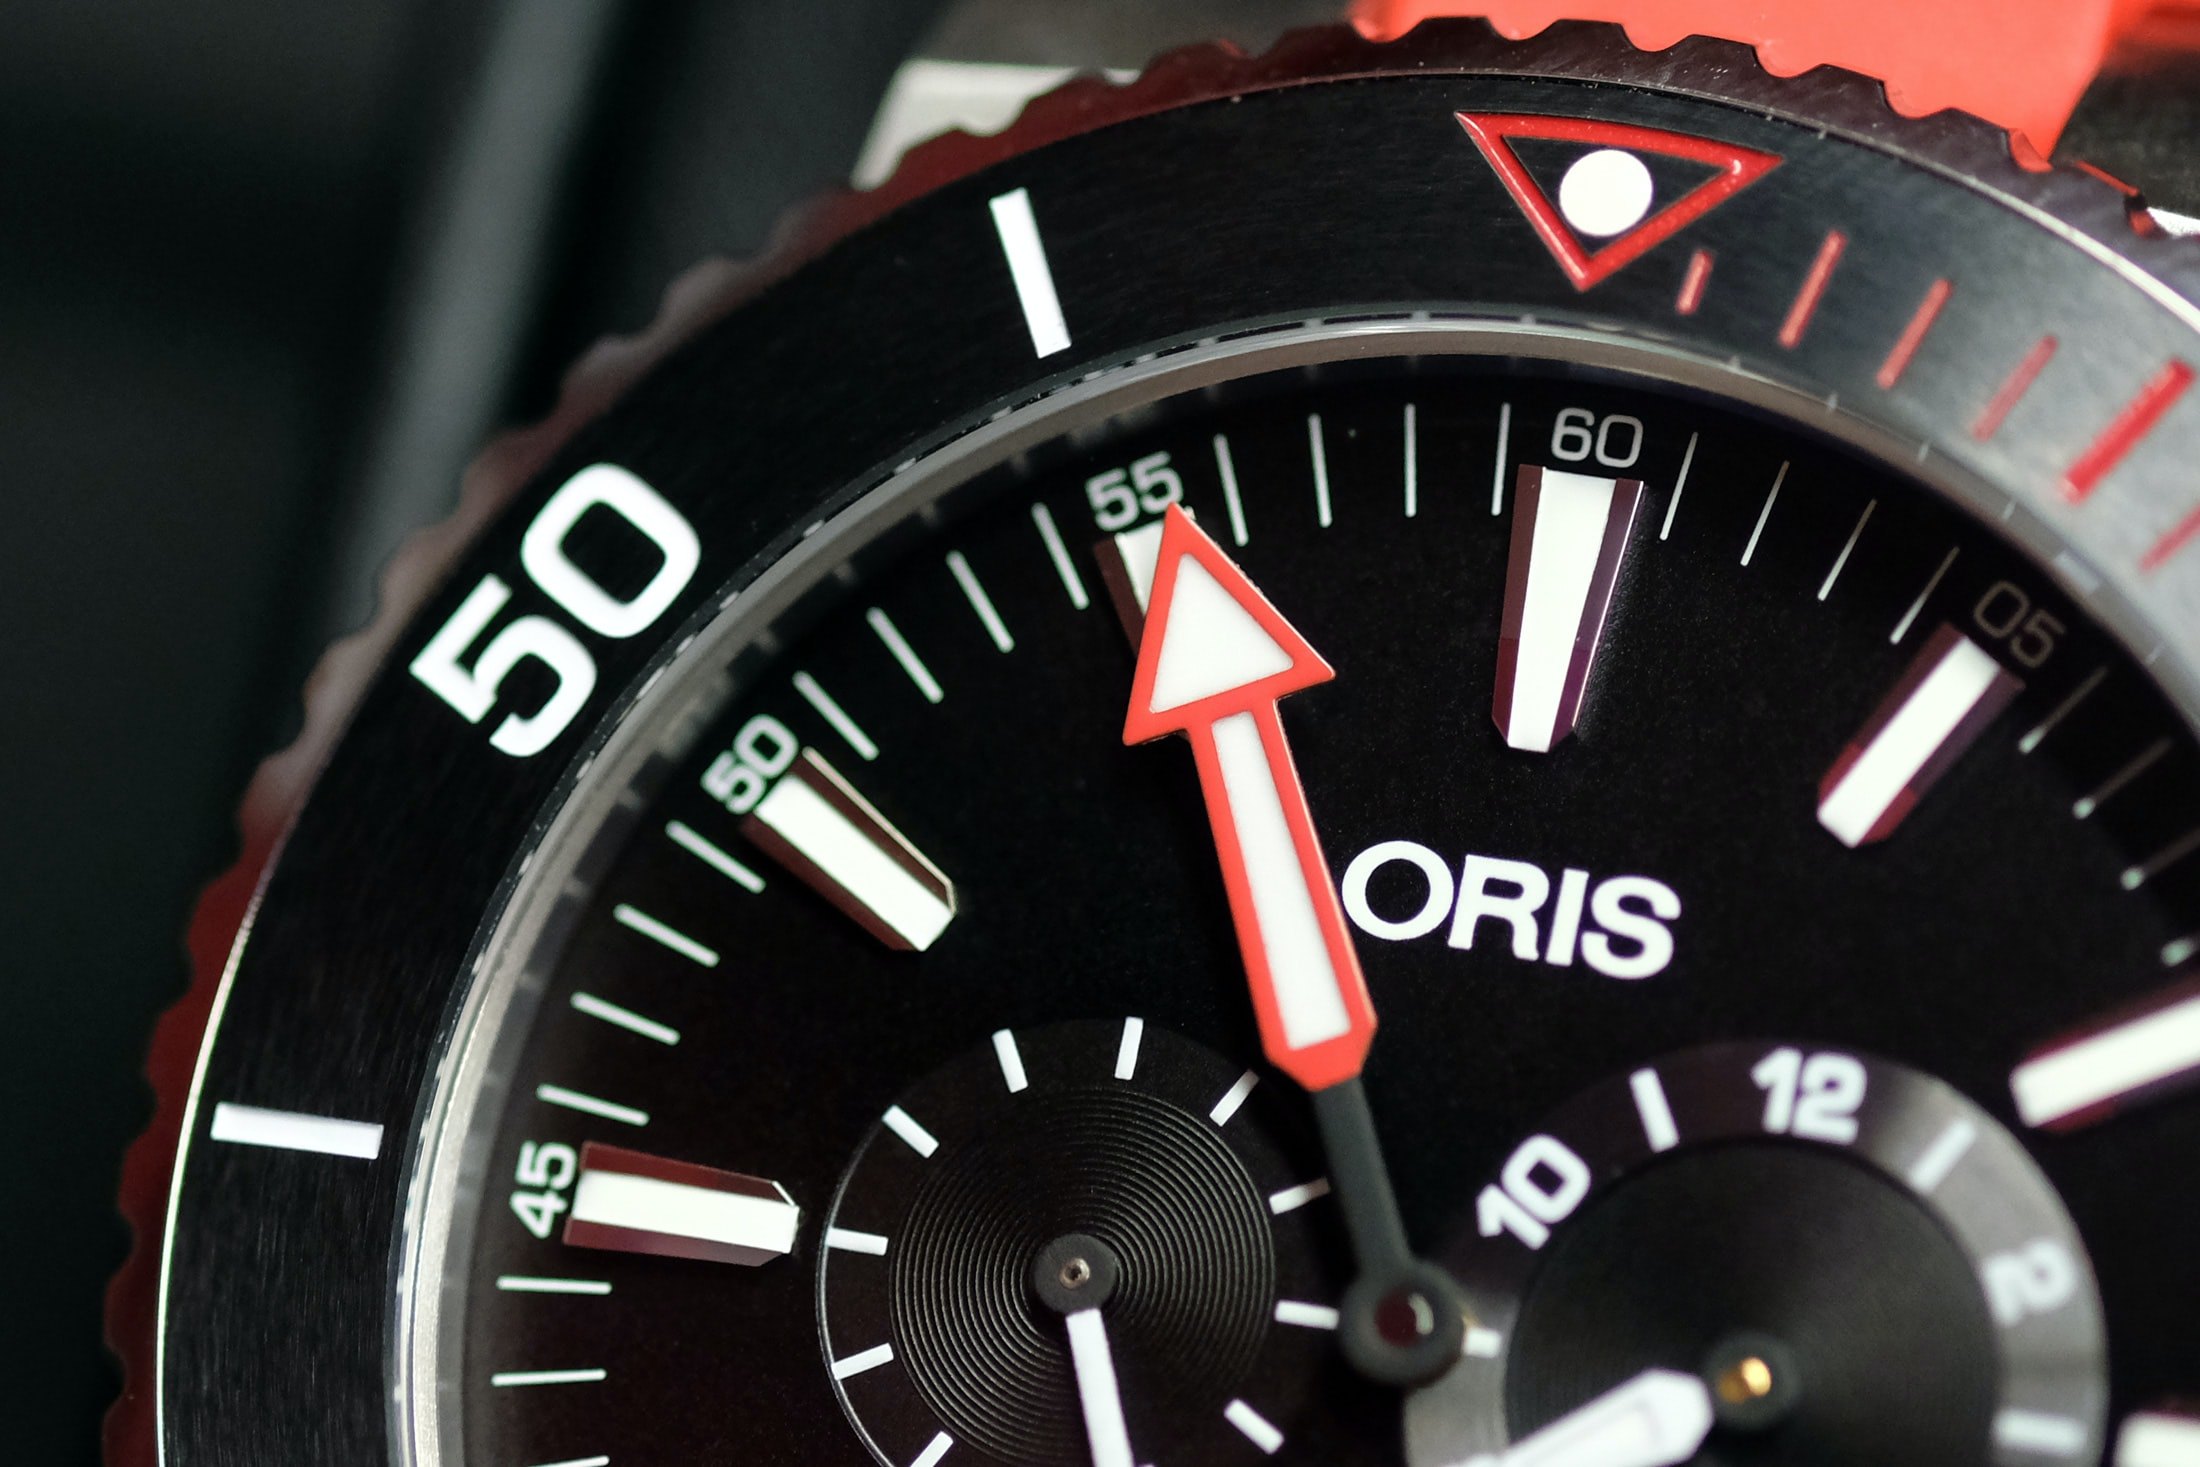 Regulateur Der Meistertaucher oris hand Hands-On: Oris Regulateur 'Der Meistertaucher' Hands-On: Oris Regulateur 'Der Meistertaucher' regulator 03